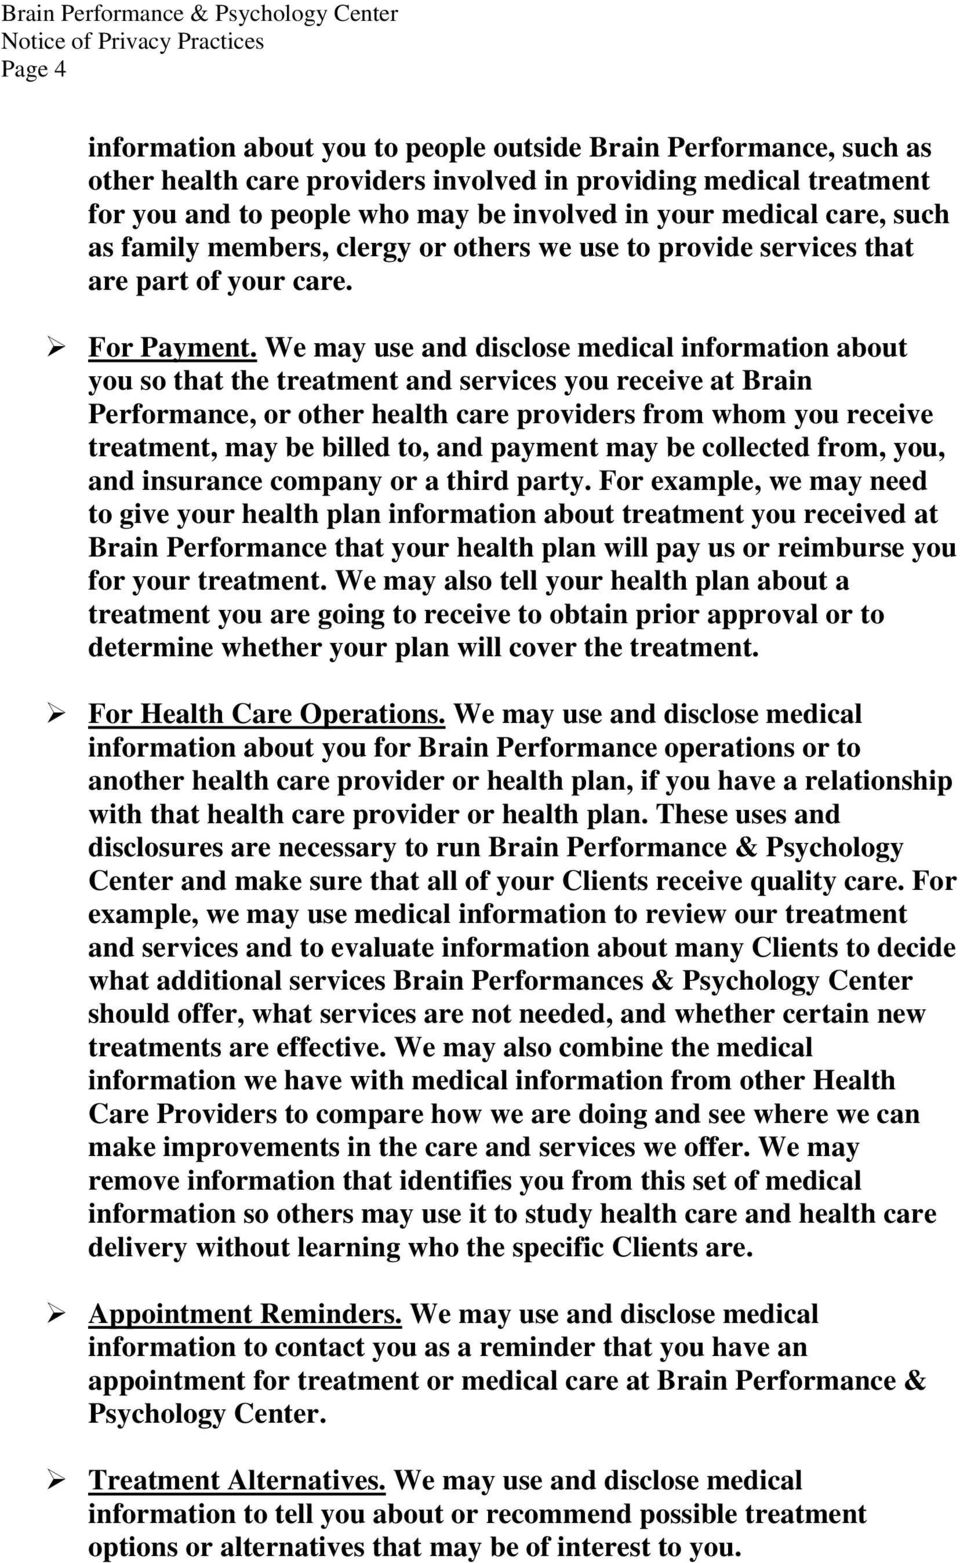 We may use and disclose medical information about you so that the treatment and services you receive at Brain Performance, or other health care providers from whom you receive treatment, may be